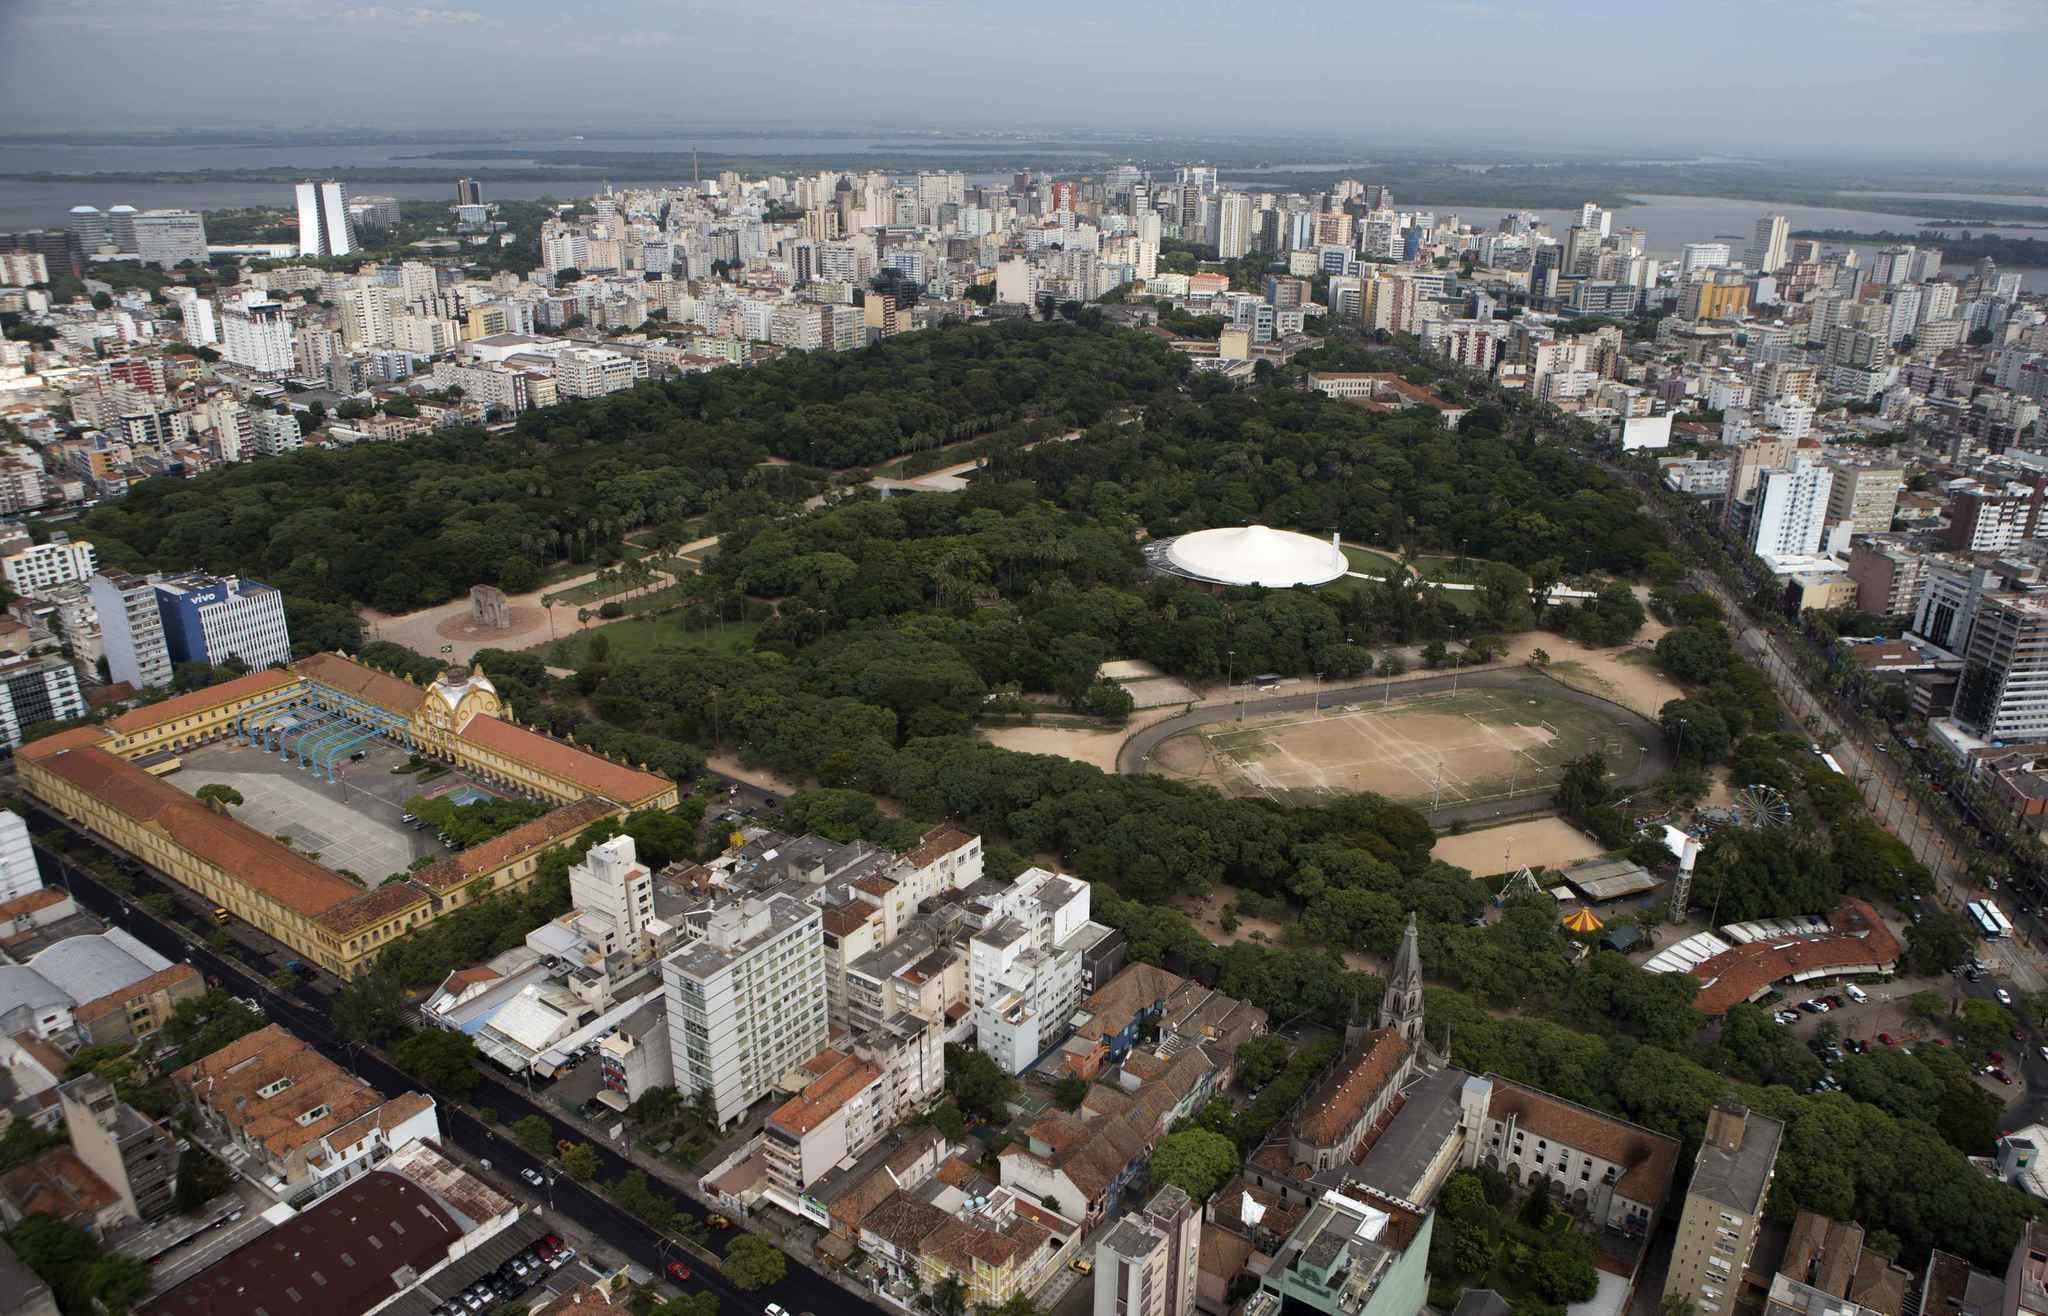 An aerial view shows the Farroupilh park in Porto Alegre January 30, 2014. Porto Alegre is one of the host cities for the 2014 World Cup in Brazil. REUTERS/Edison Vara (BRAZIL -